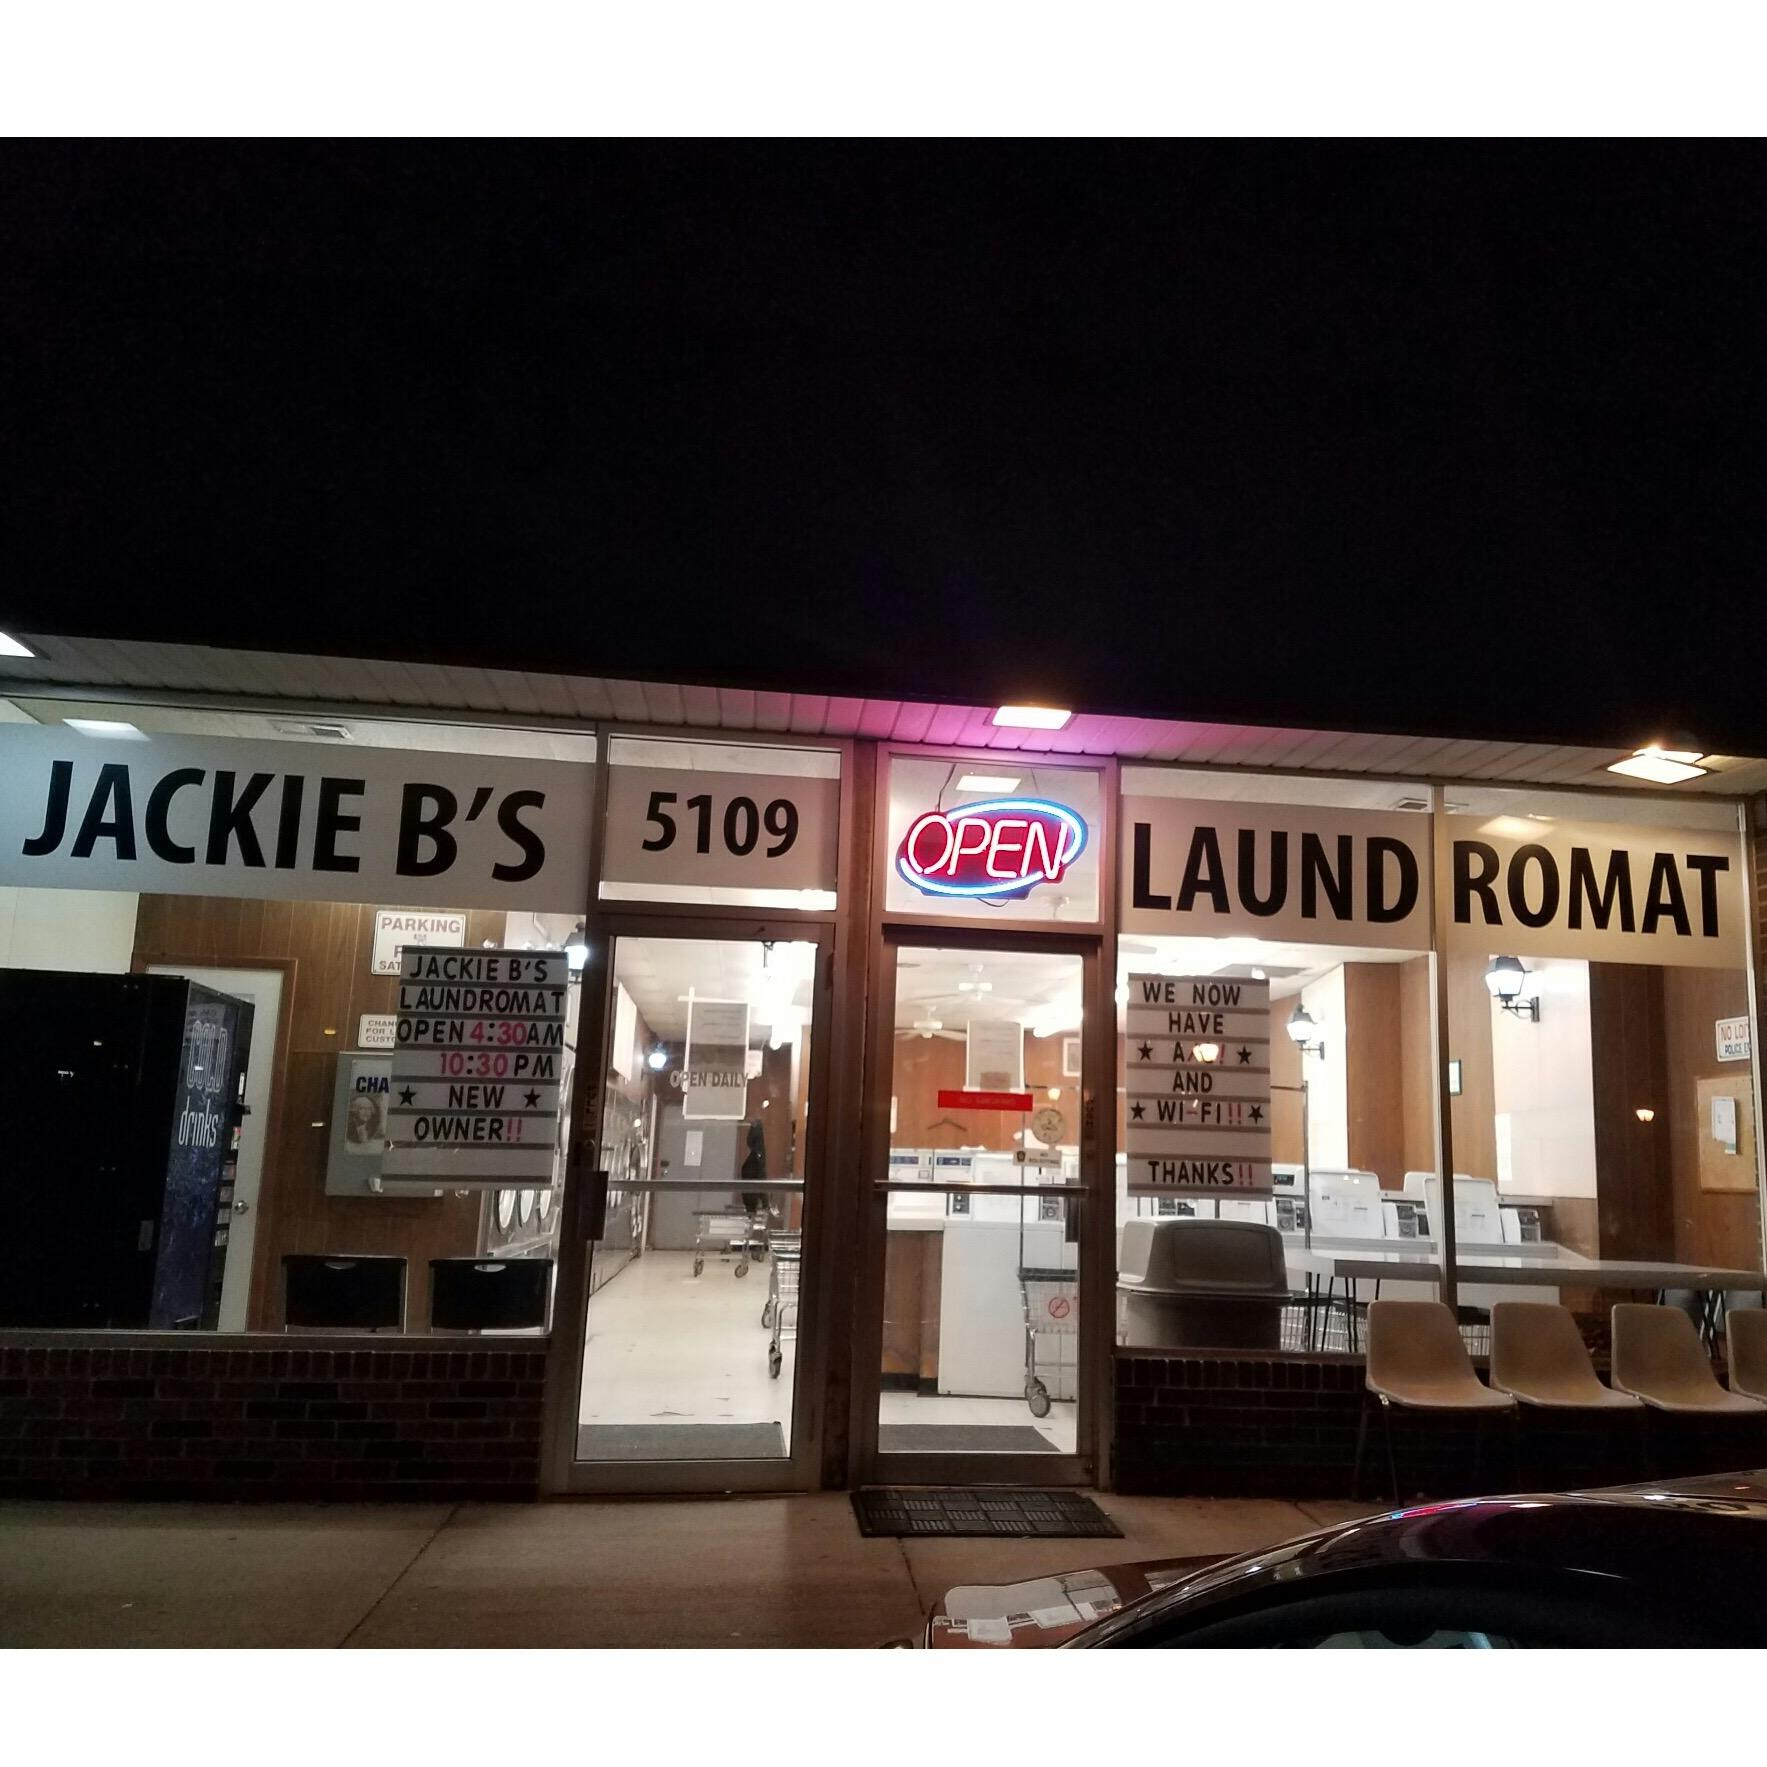 Jackie b's laundromat - Downers Grove, IL - Laundry & Dry Cleaning